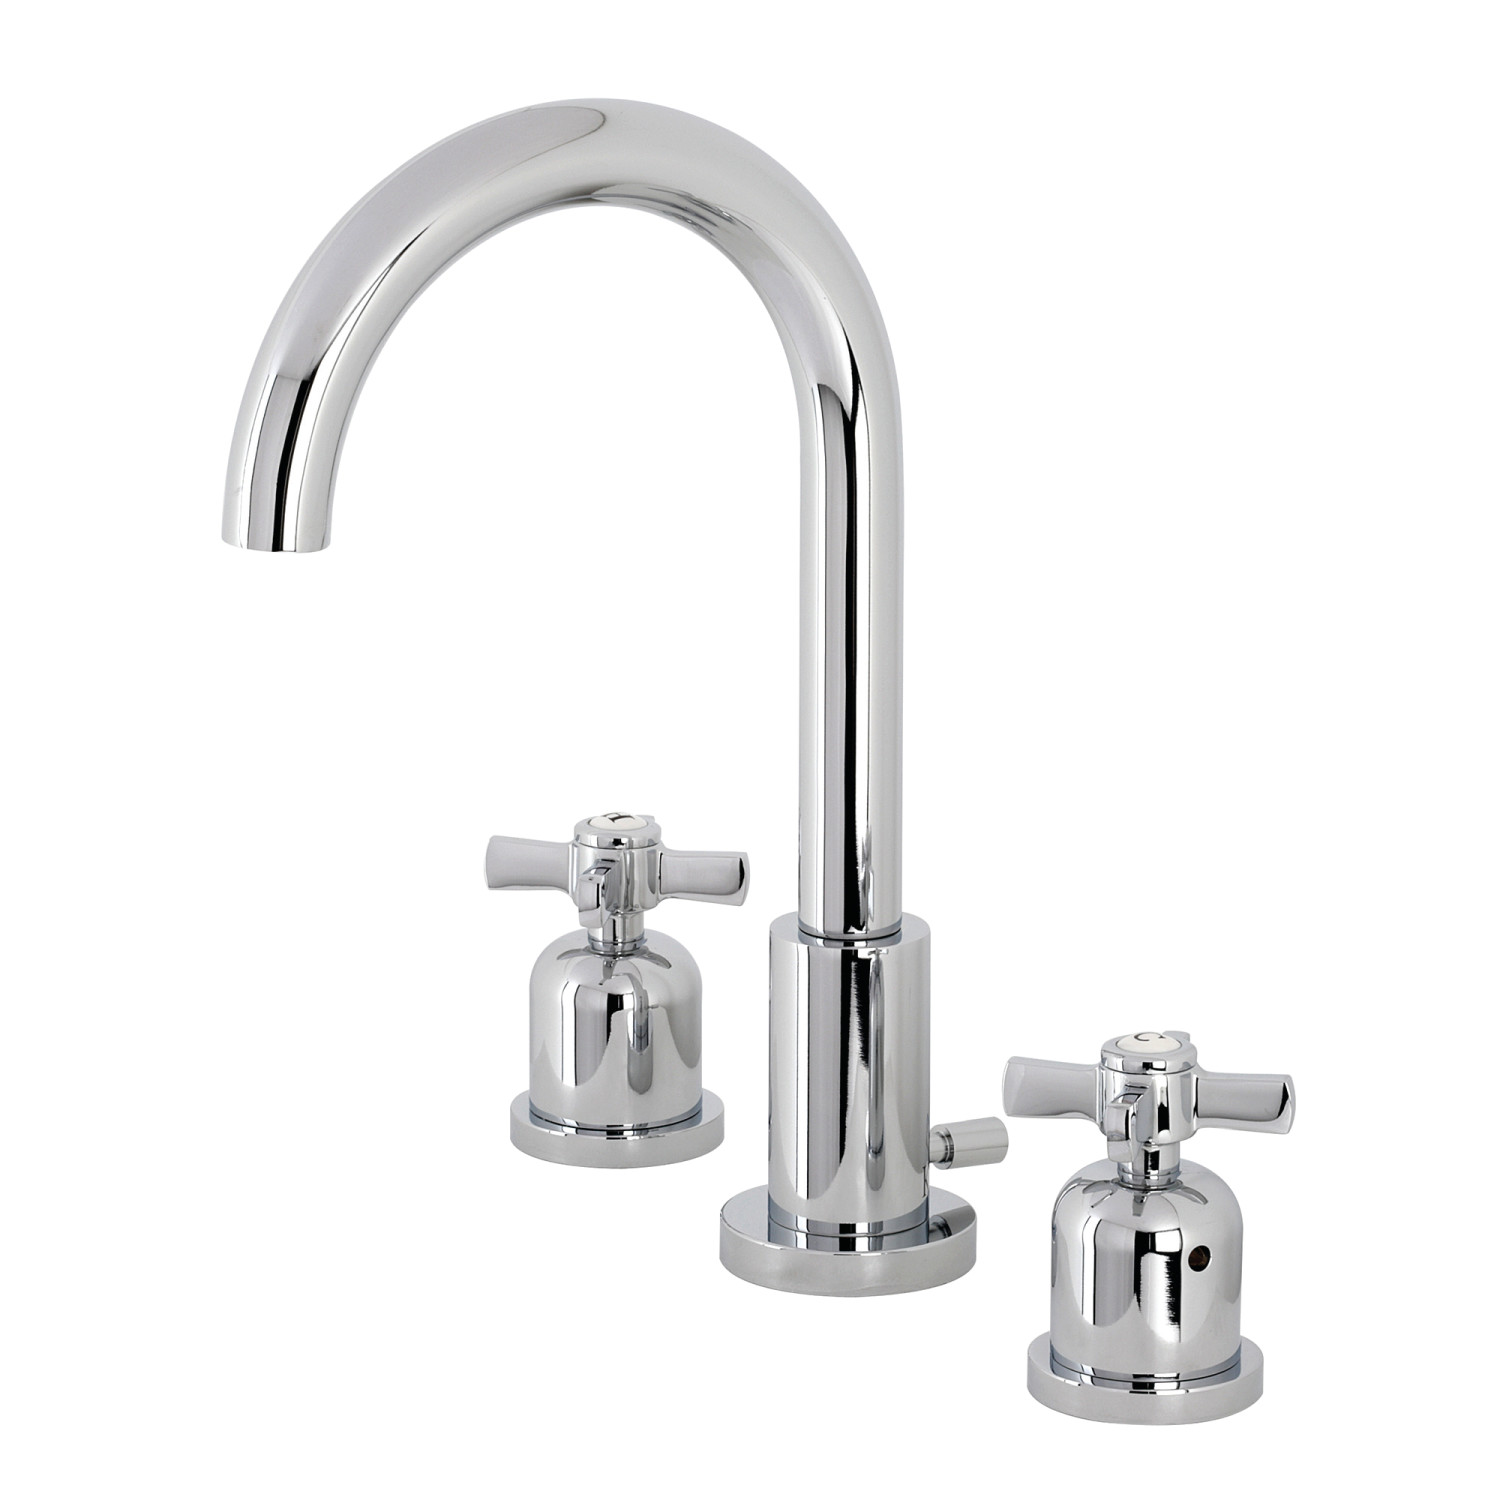 Modern Two-Handle Three-Hole Deck Mounted Widespread Bathroom Faucet with Brass Pop-Up in Polished Chrome Finish